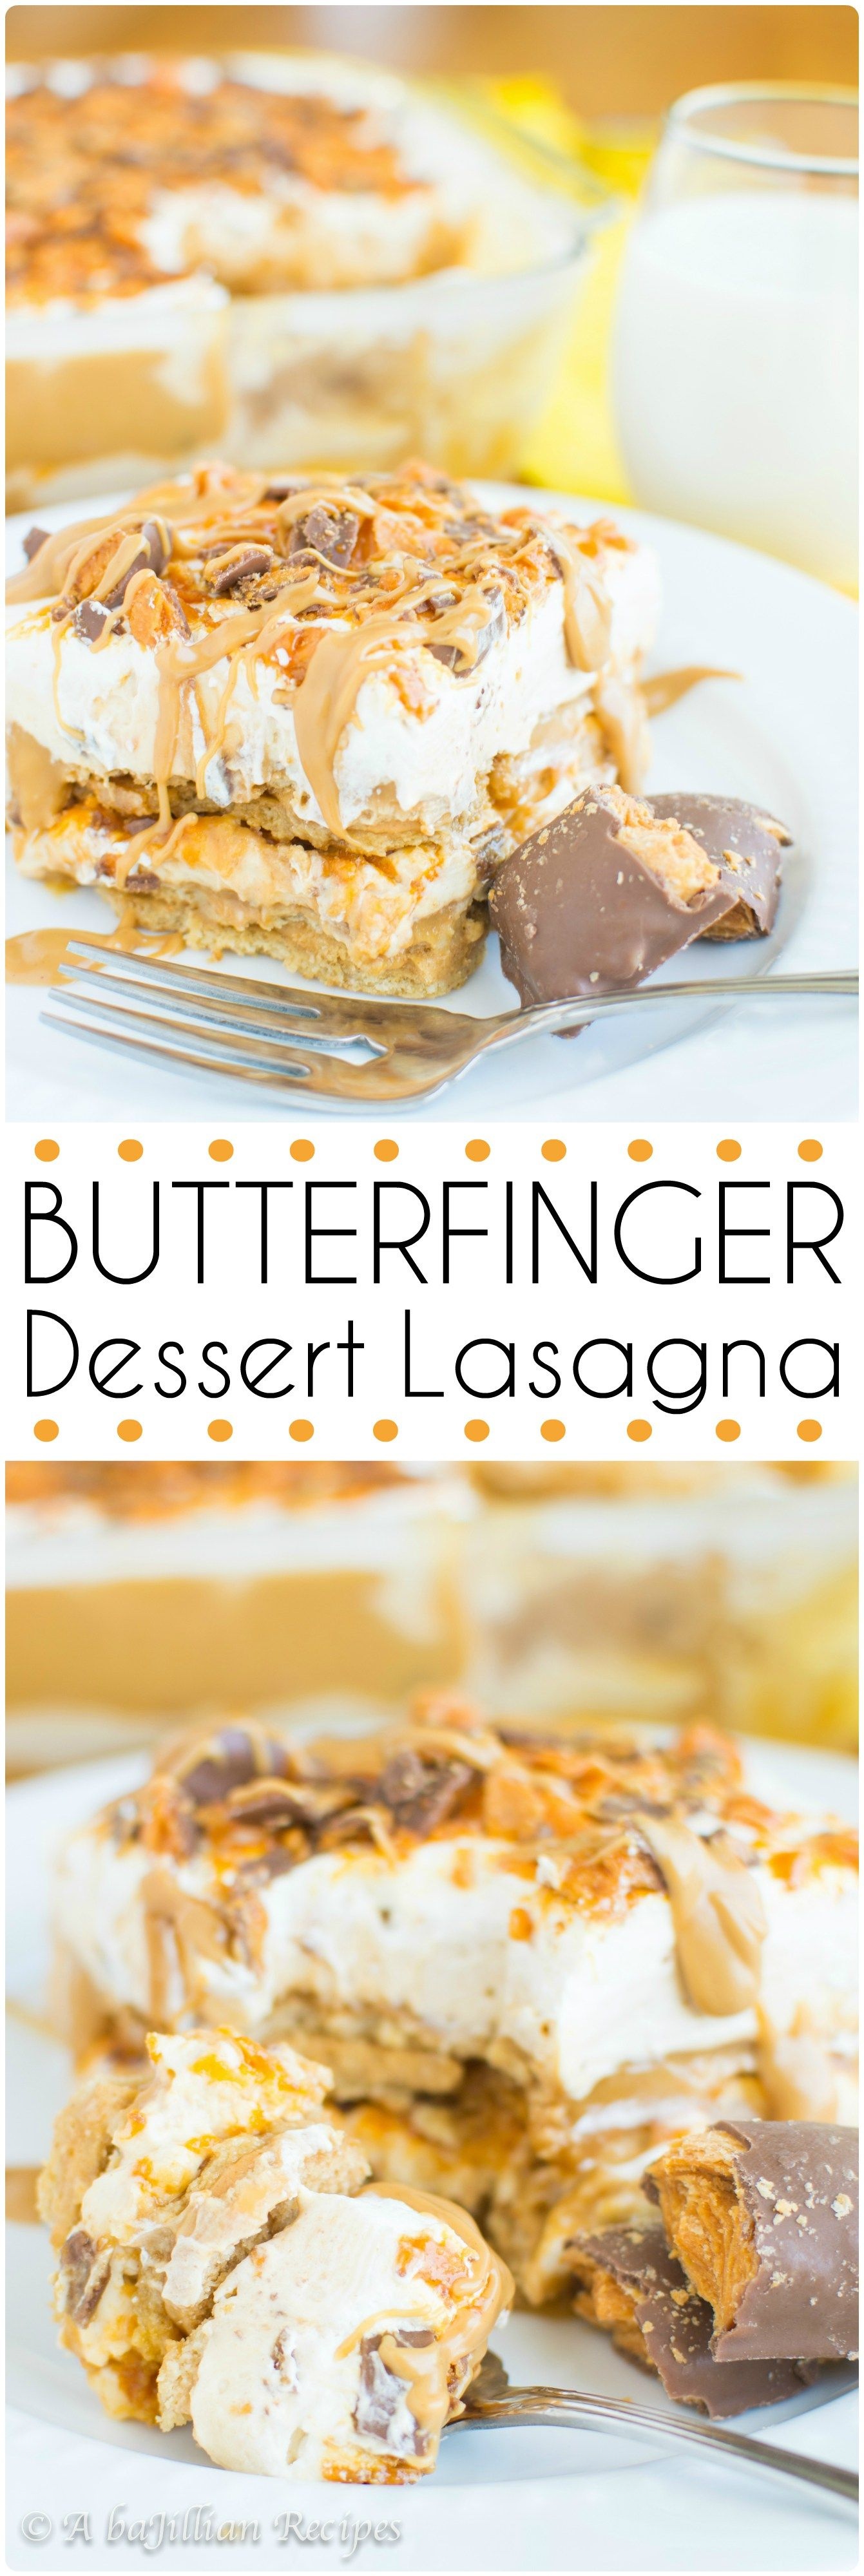 Butterfinger Dessert Lasagna is a simple, no-bake indulgence with layers of Nutter Butter cookies, butterscotch pudding, peanut butter cheesecake mousse, and crushed Butterfingers